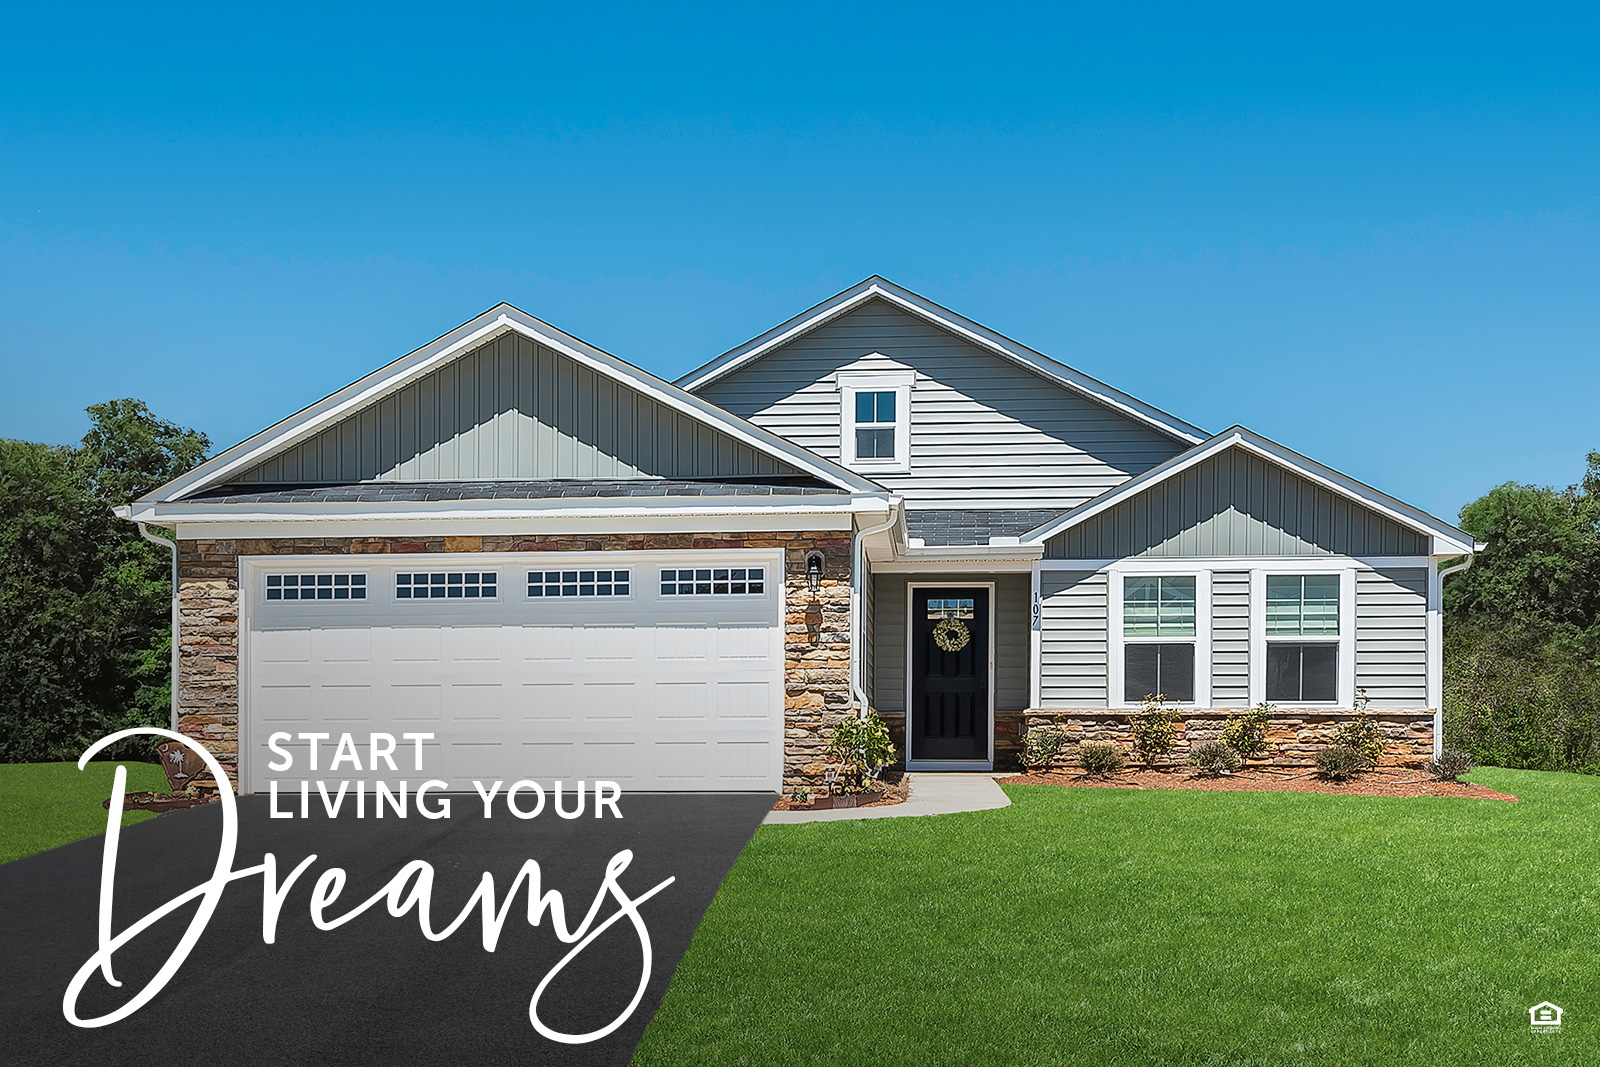 New Homes for sale at Spring Valley Farms Ranch Homes in